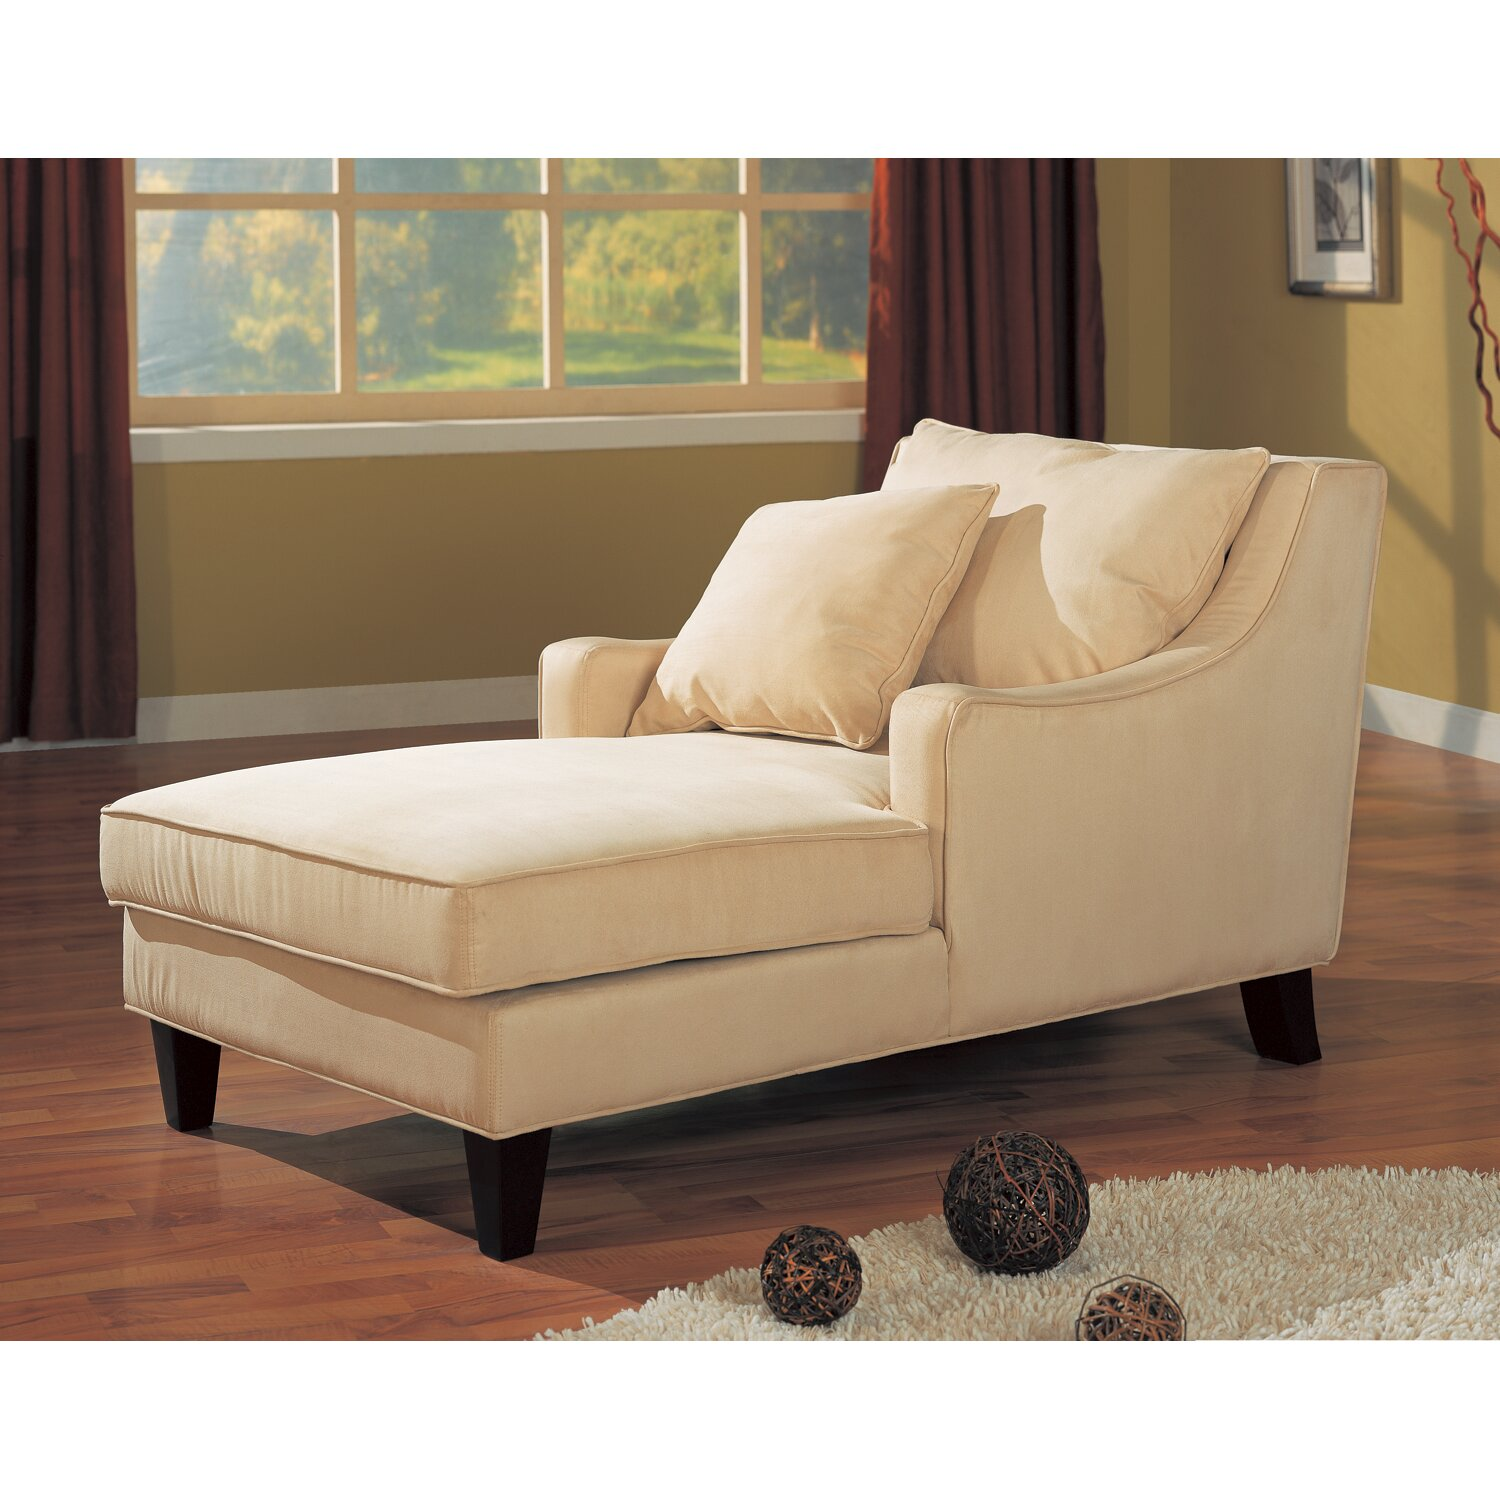 Living Room Bedroom Lounge Furniture chaise lounge chairs youll love wayfair